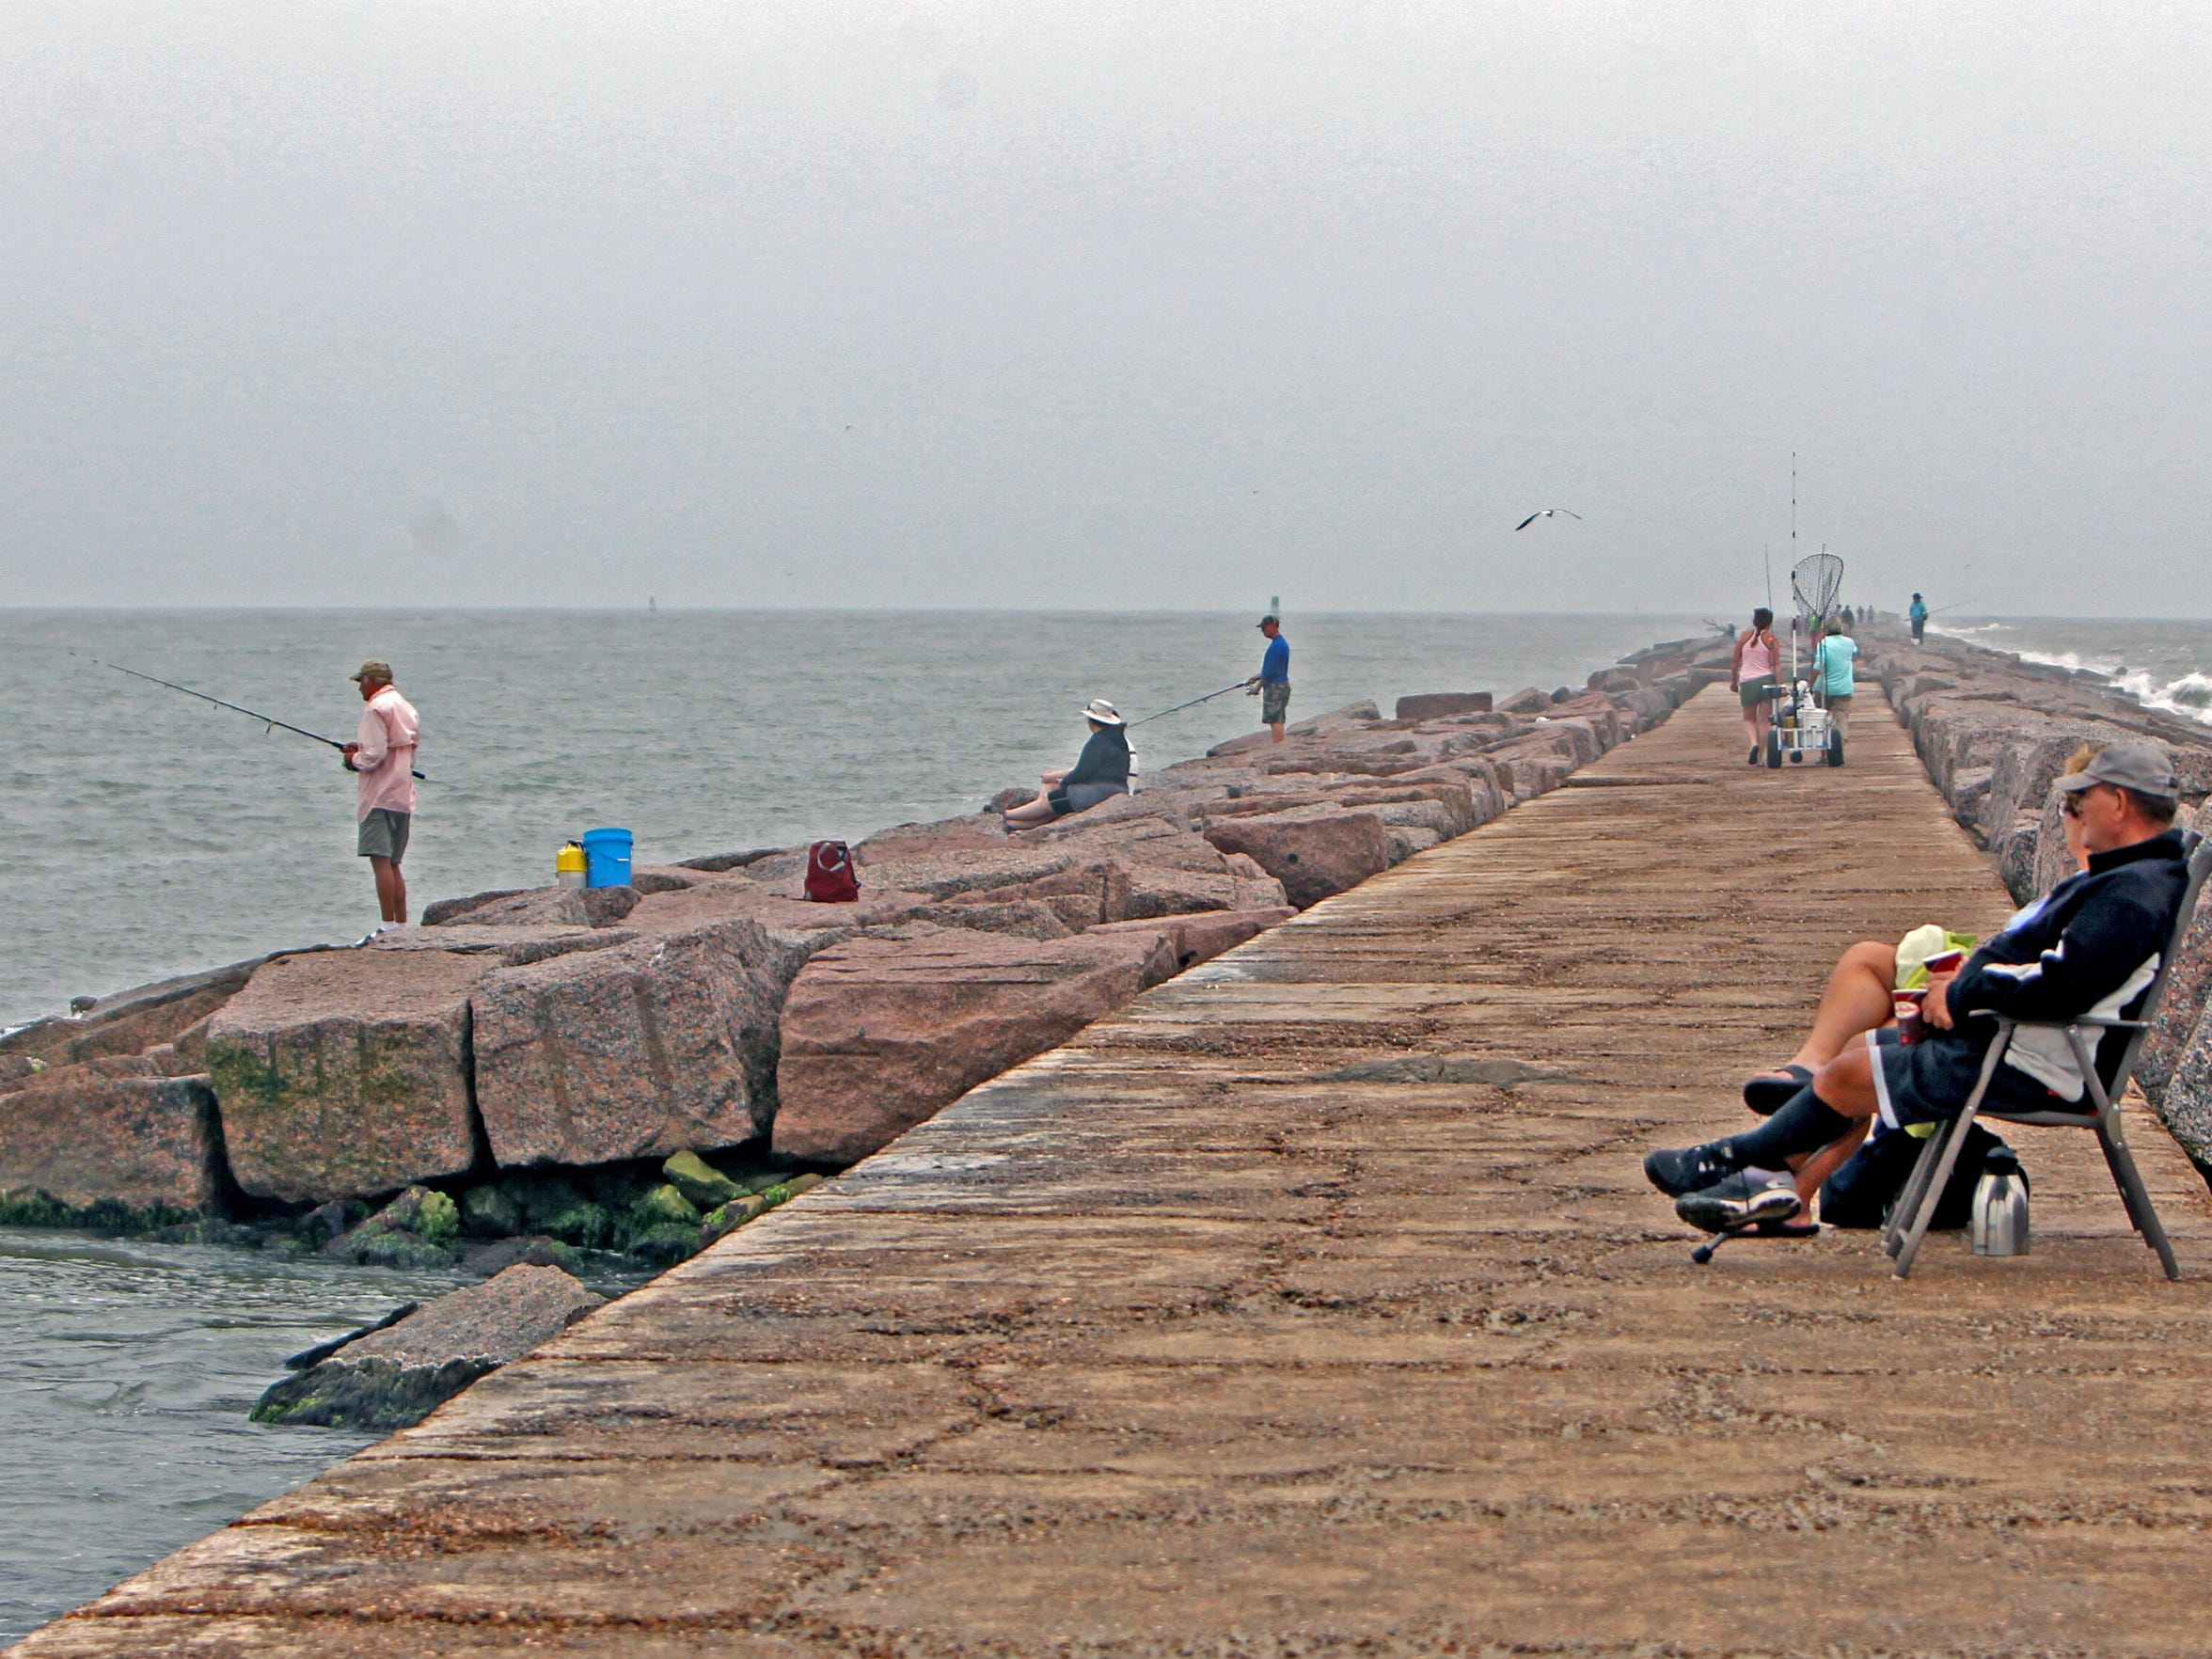 The Port Aransas South Jetty is a drive-up fishing